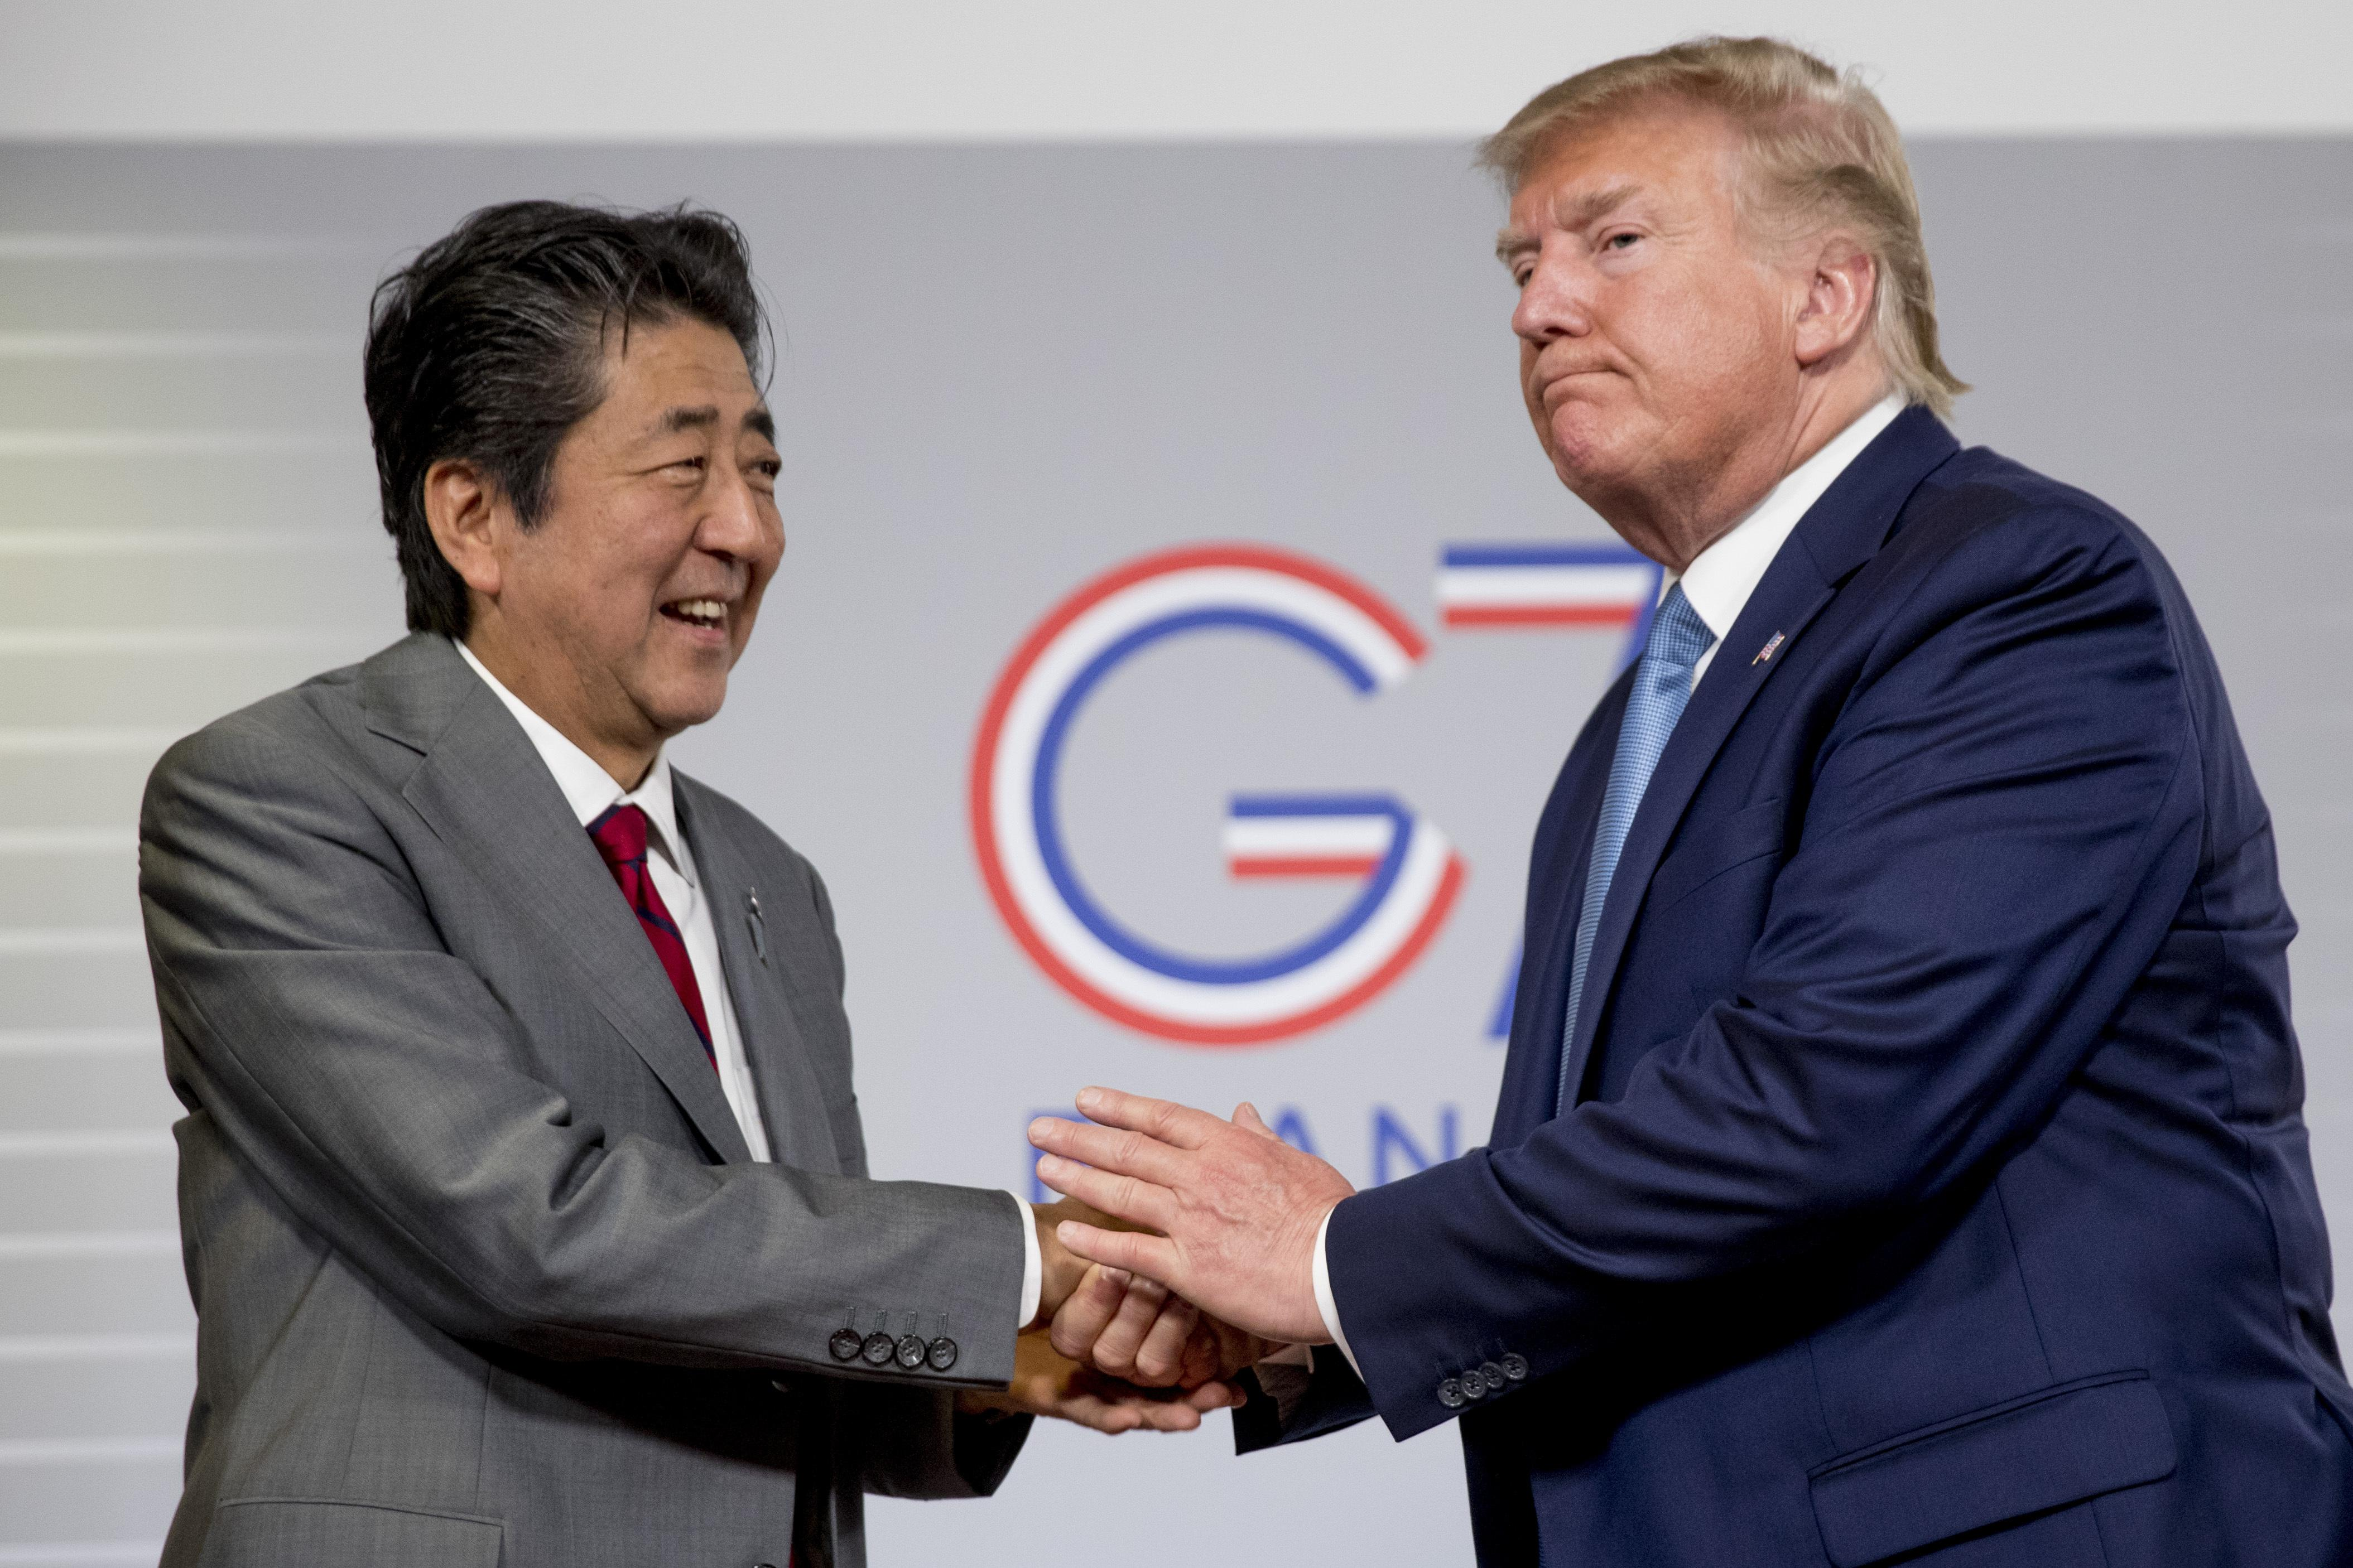 CROSSTALK: Forget G-7, what we need is G-5